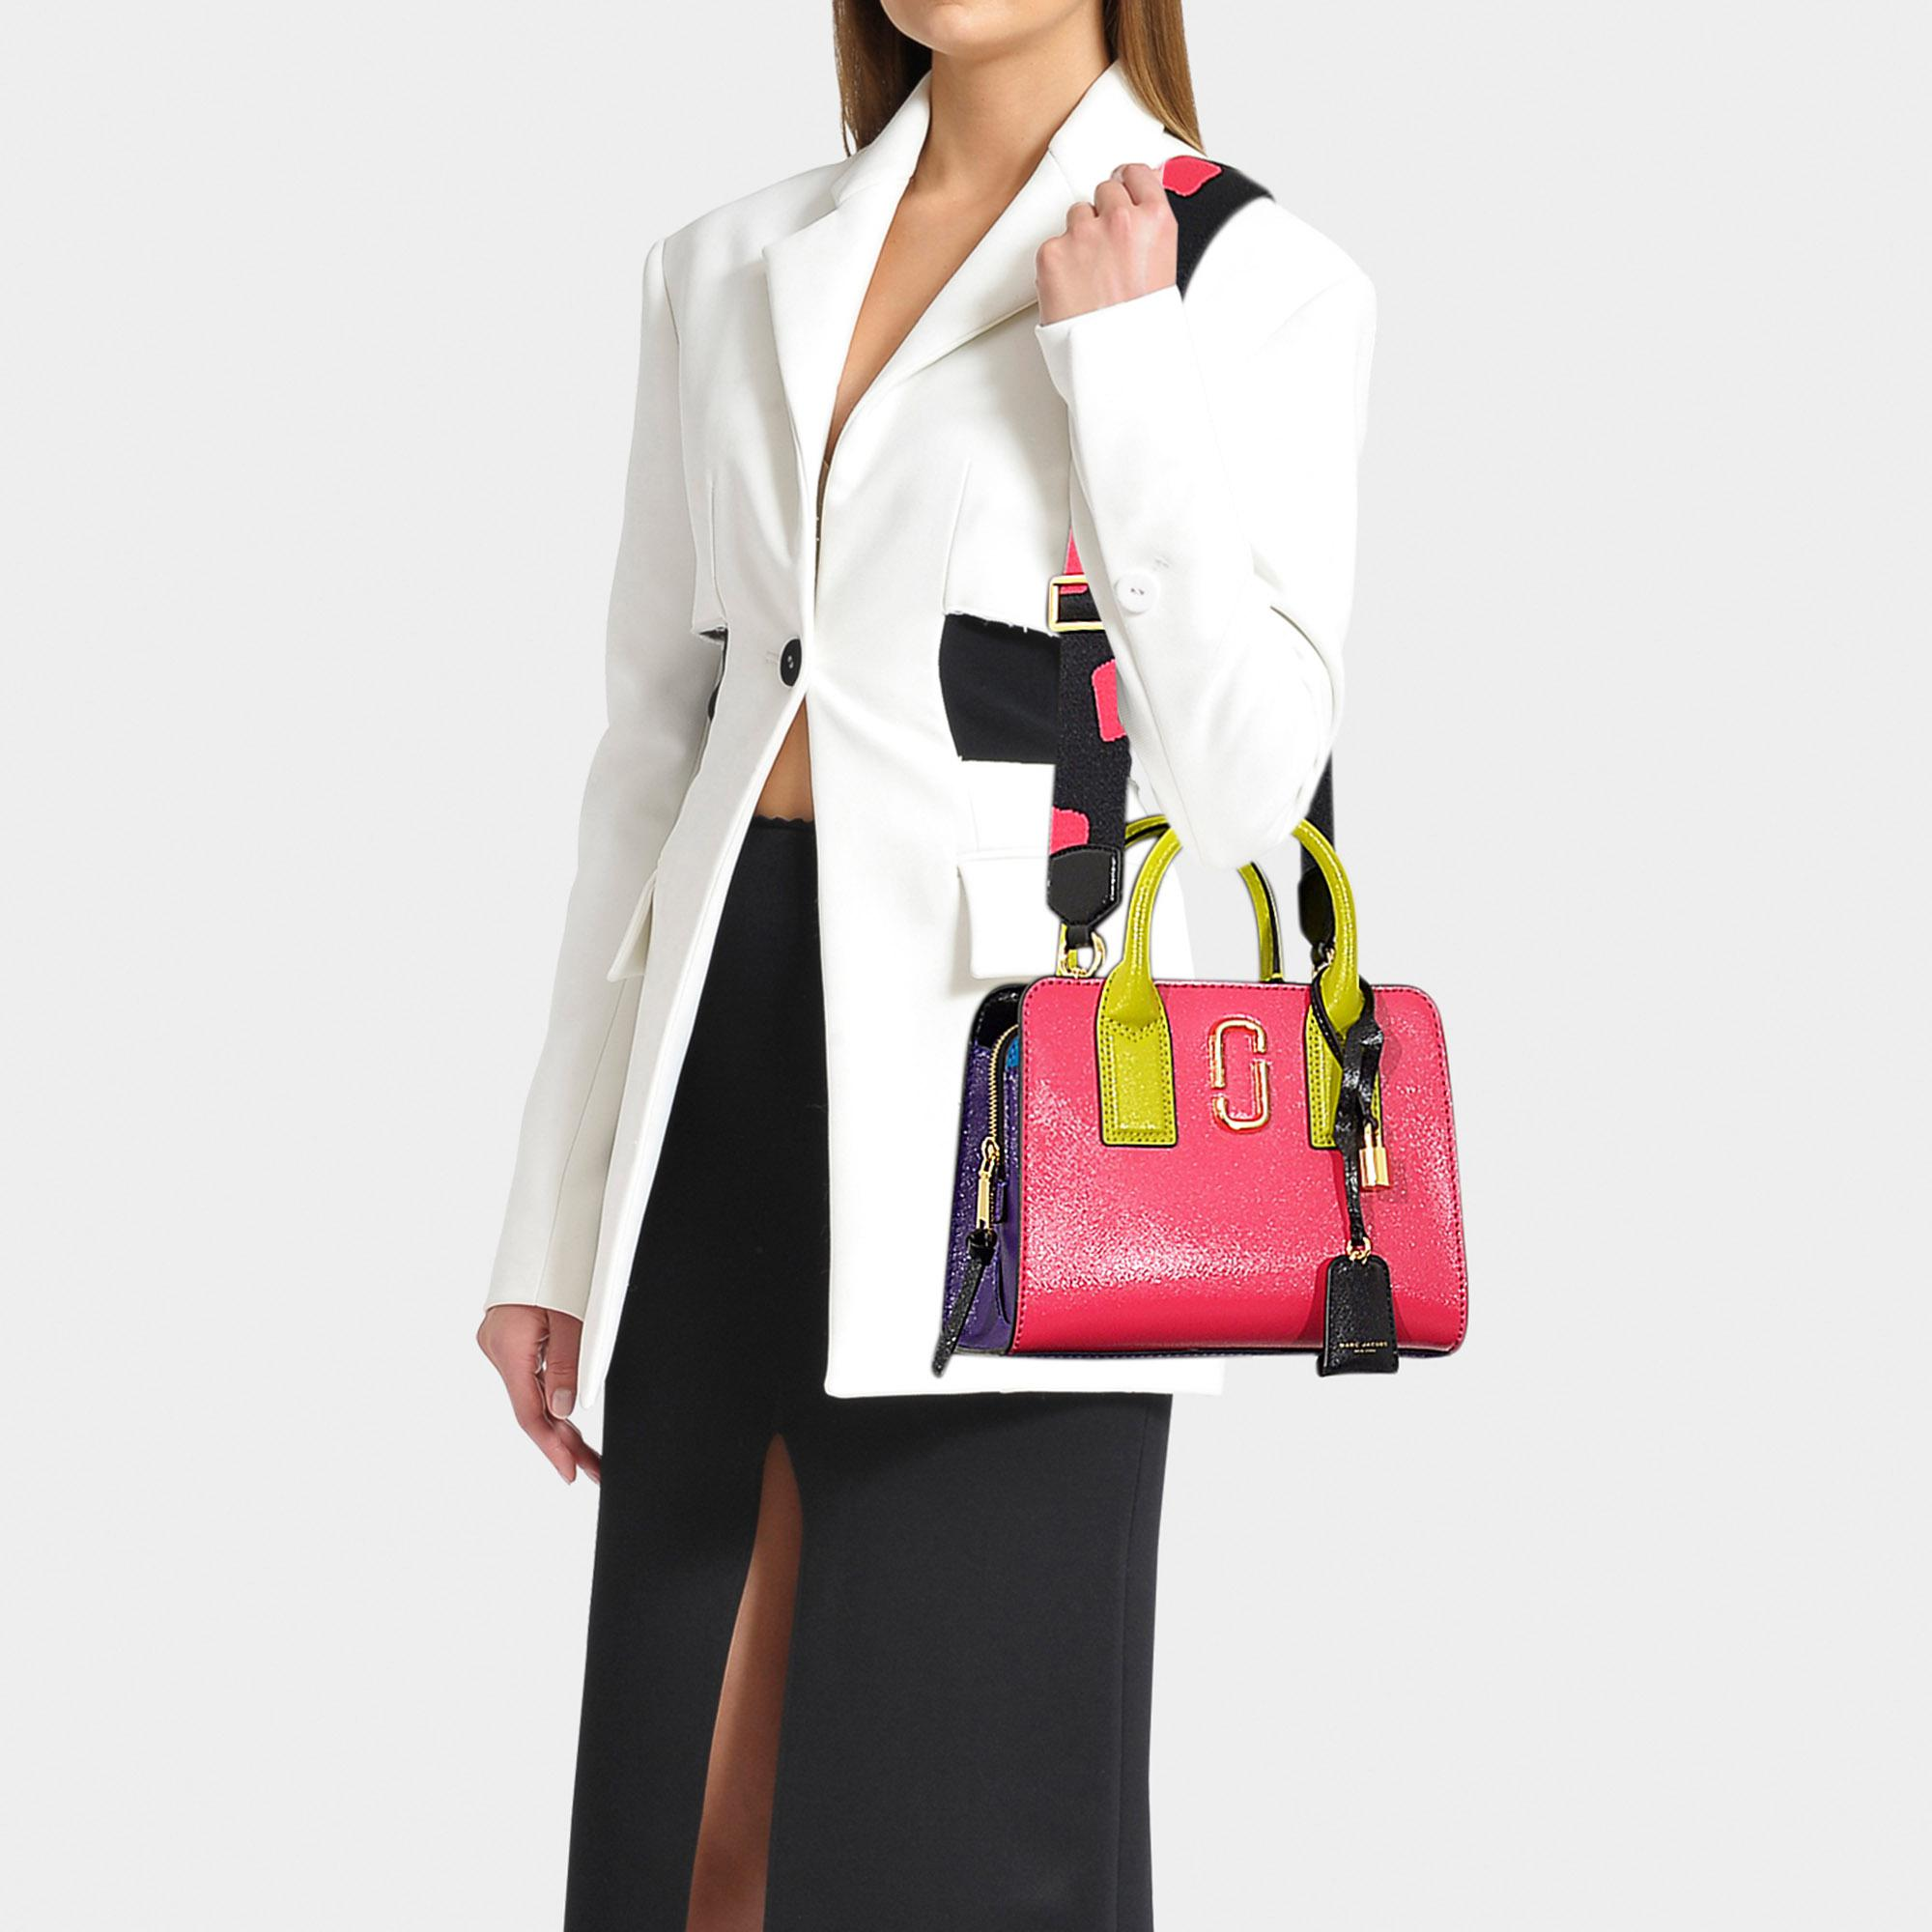 ddf6892a93 Marc Jacobs - Little Big Shot Bag In Multicolor Peony Pink Polyurethane  Coated Calfskin - Lyst